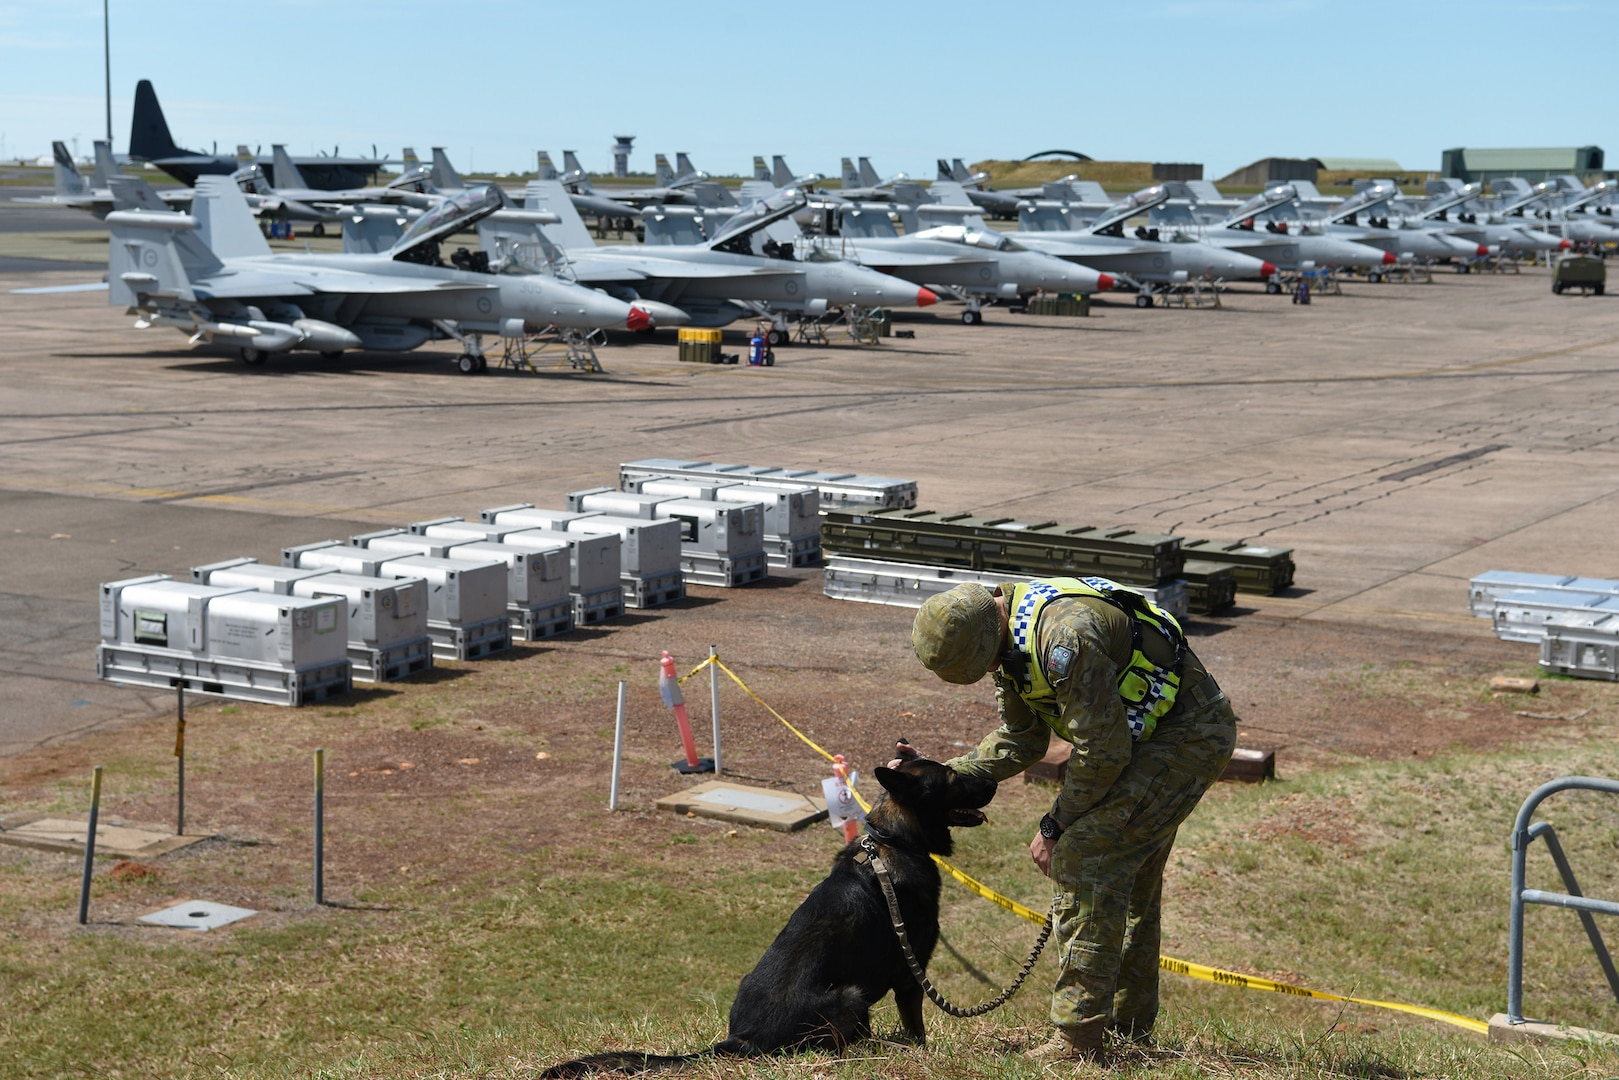 U.S. Air Force Bomber, Fighter Squadrons Support Australian Air Force Training